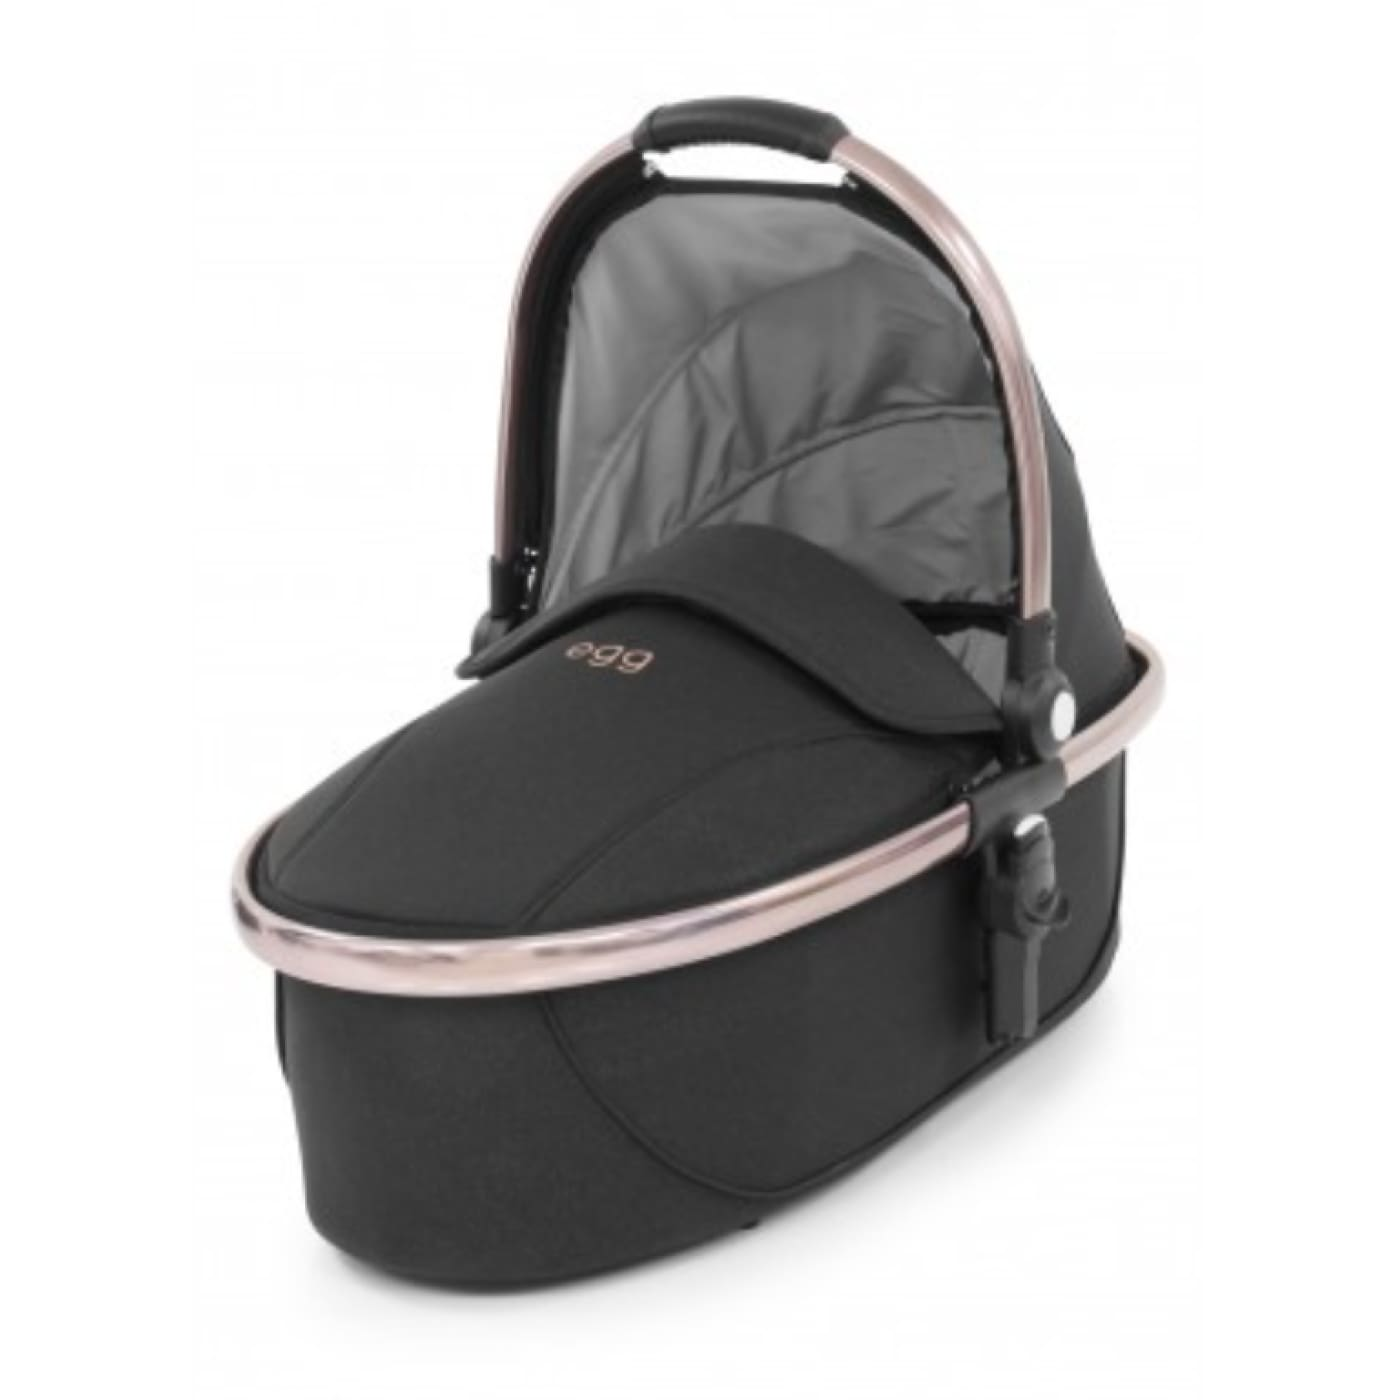 Egg Carry Cot - Diamond Black - PRAMS & STROLLERS - BASS/CARRY COTS/STANDS